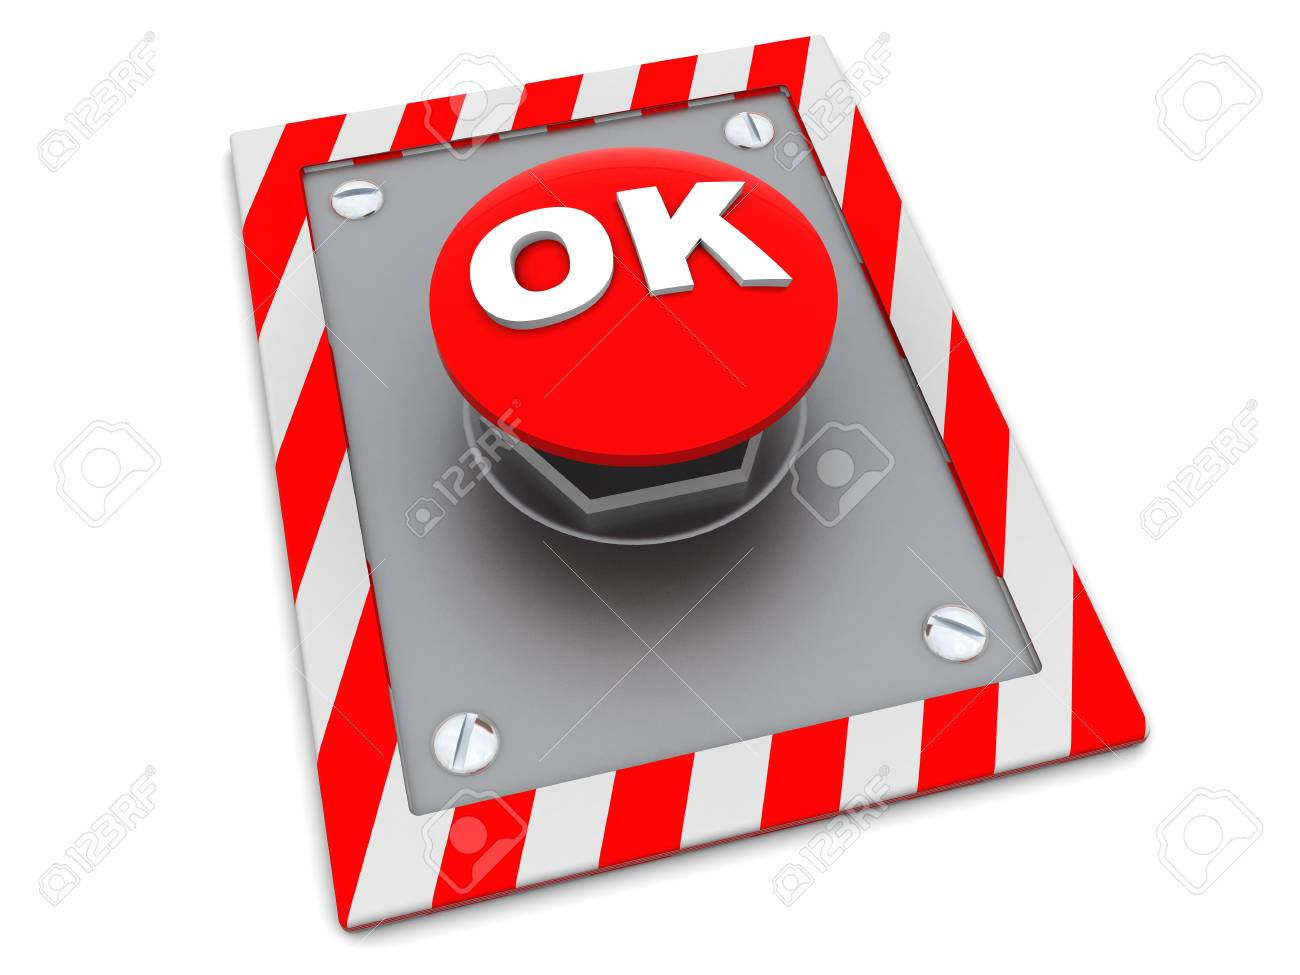 3d illustration of red button with 'ok' sign Stock Photo - 4718304